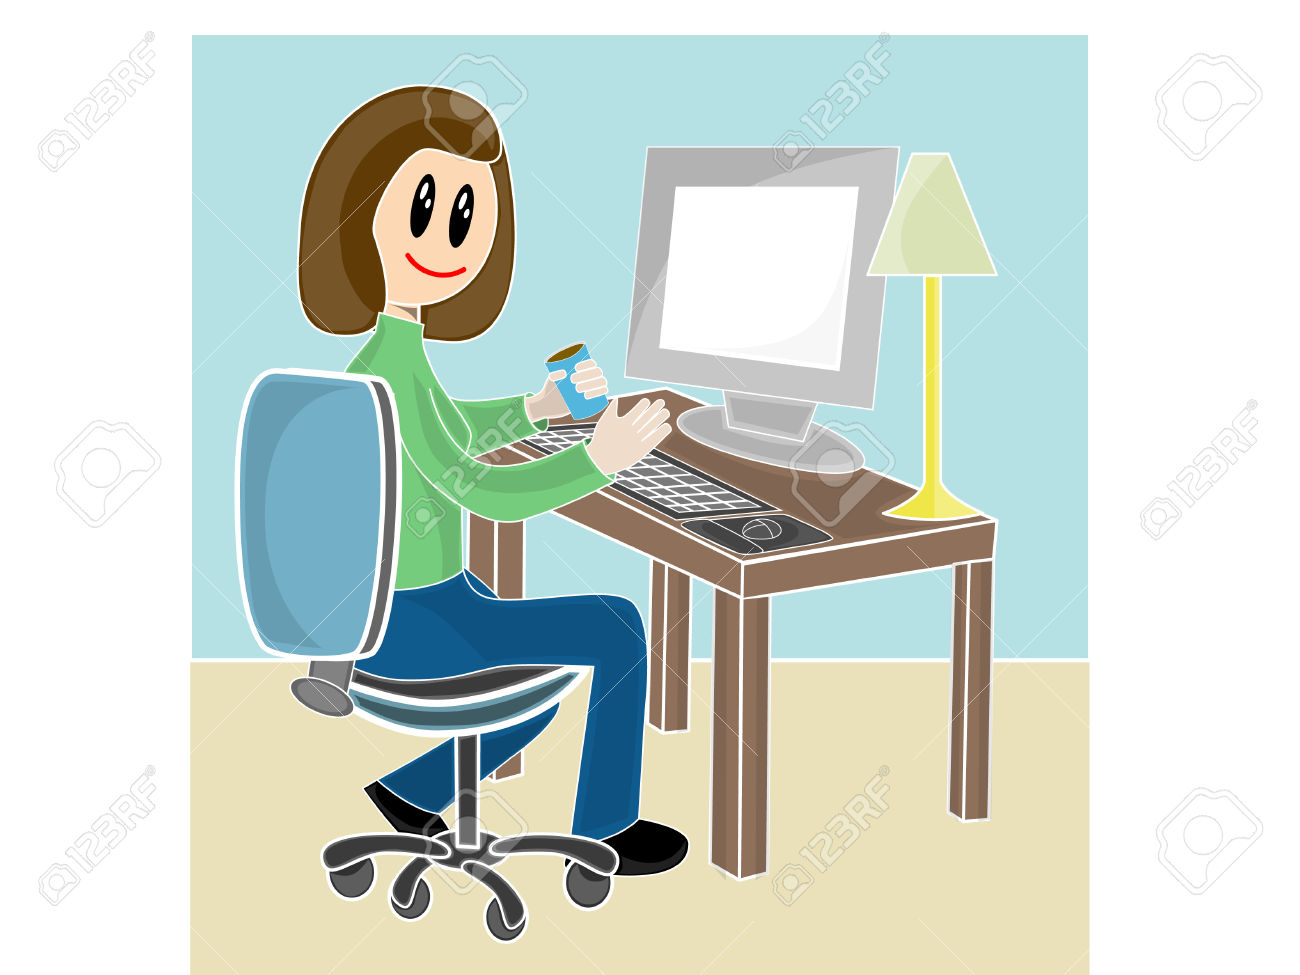 In front of computer clipart banner transparent download Sitting in front of computer clipart - ClipartFest banner transparent download